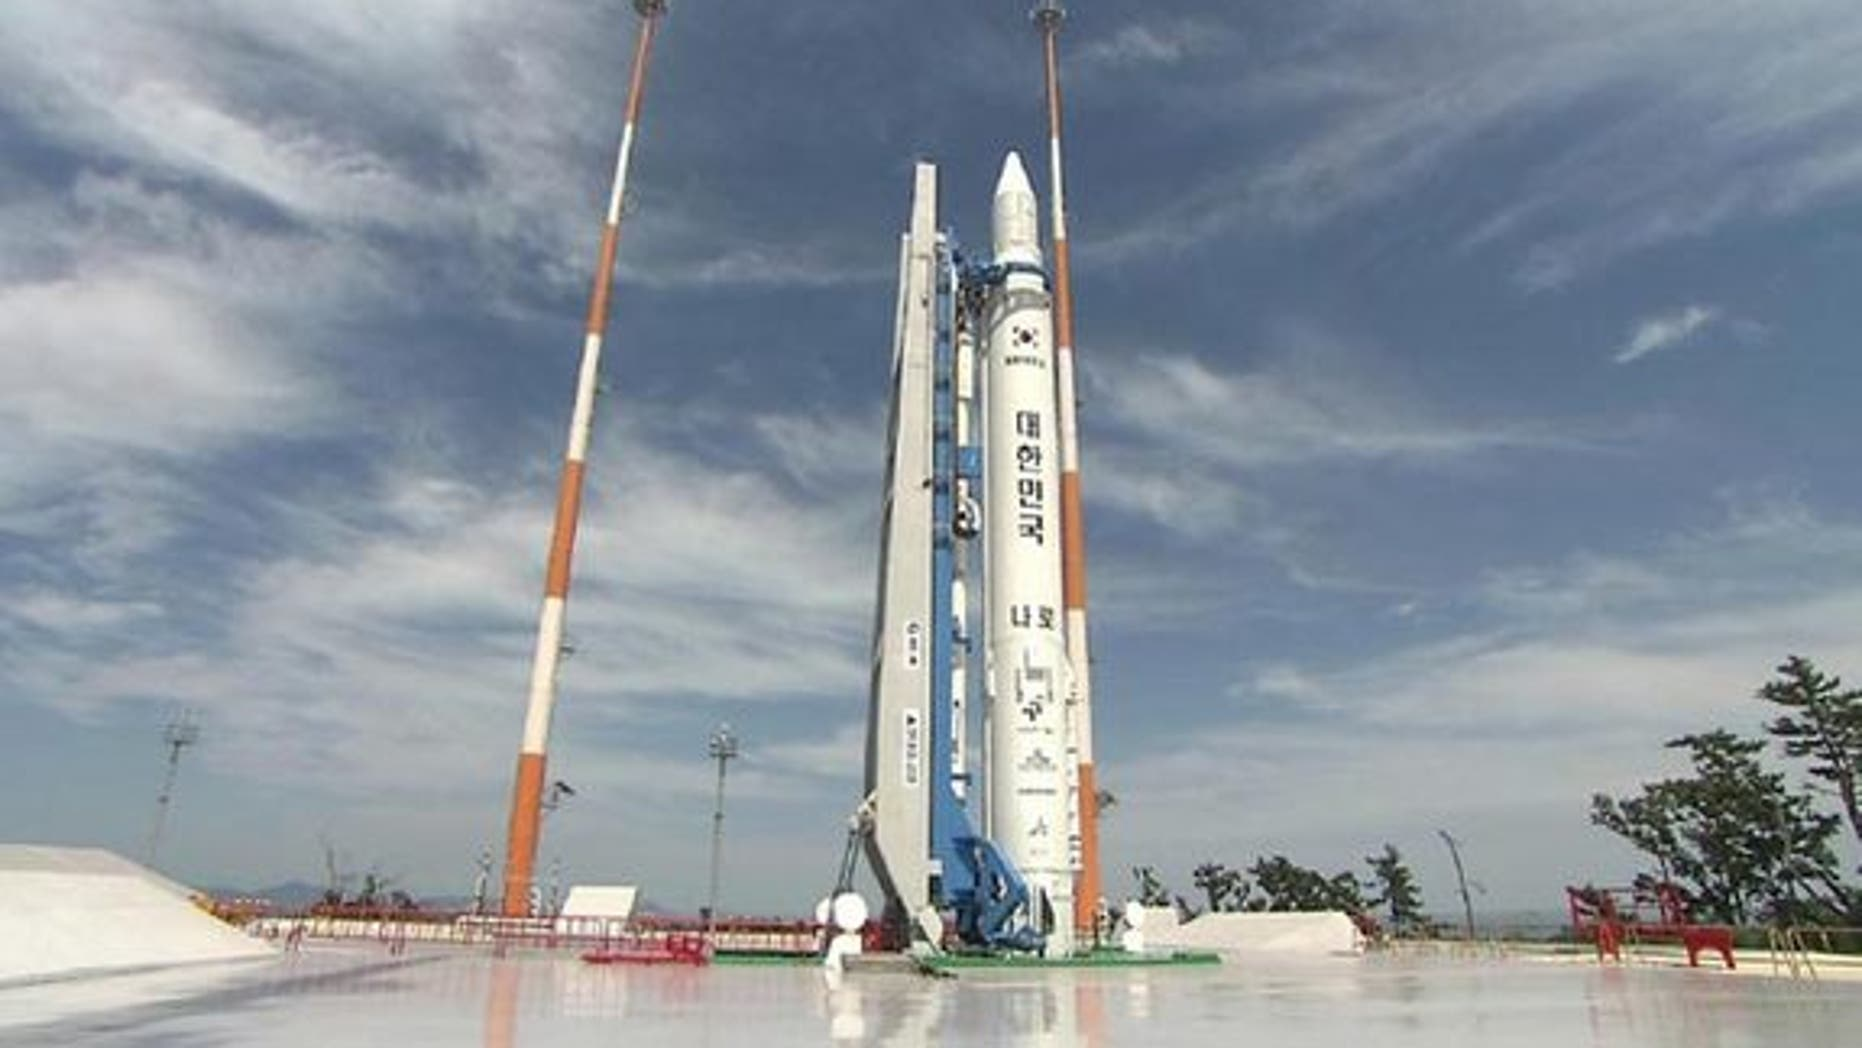 The South Korean KSLV-1 rocket sits on the launch pad during ground tests before its first launch in 2009.